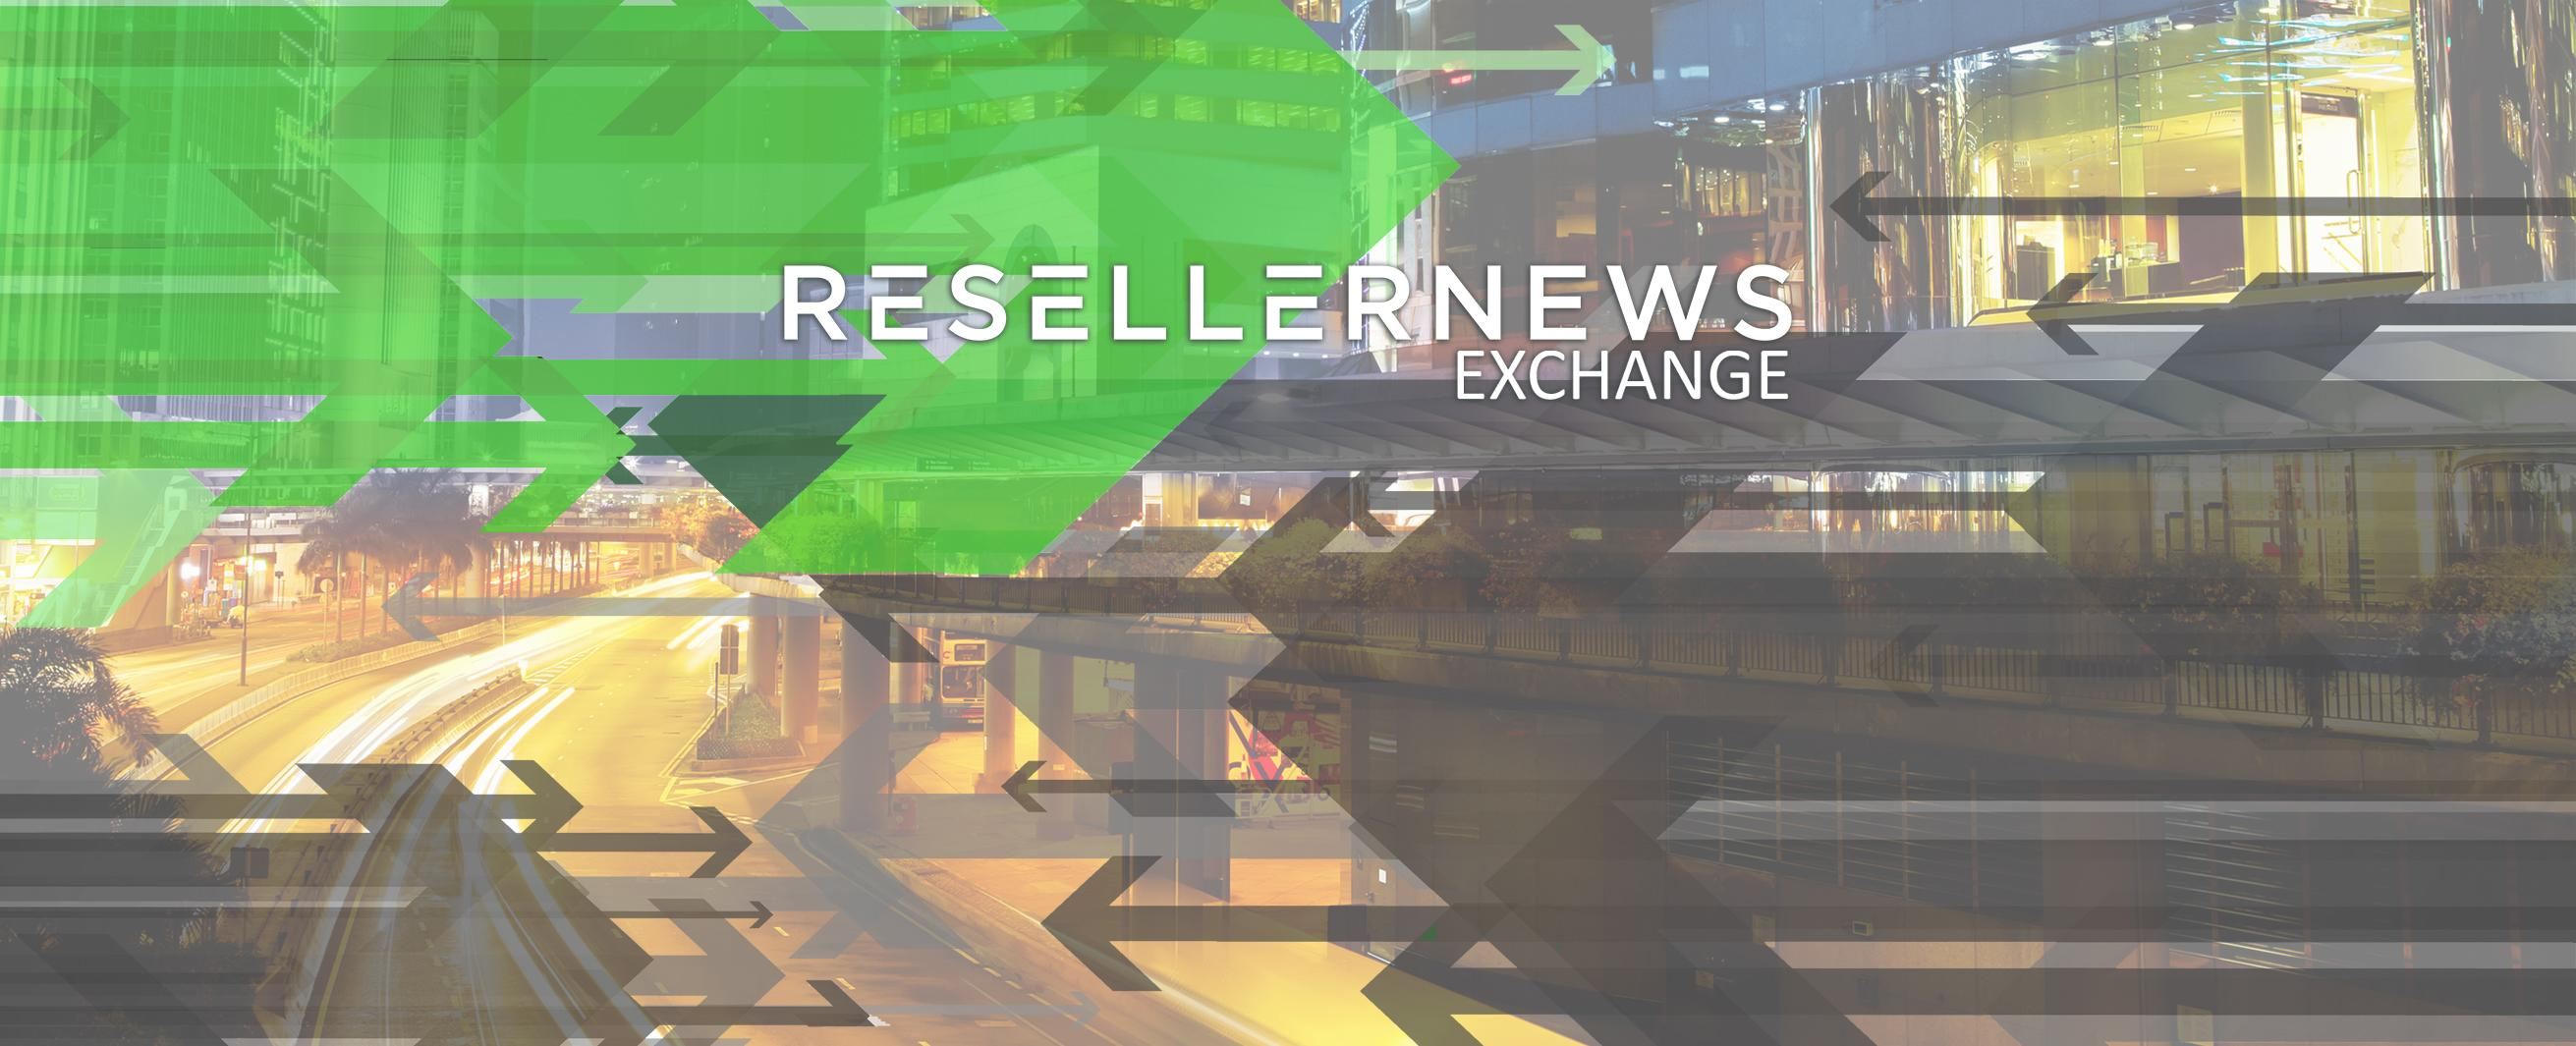 Reseller News Exchange